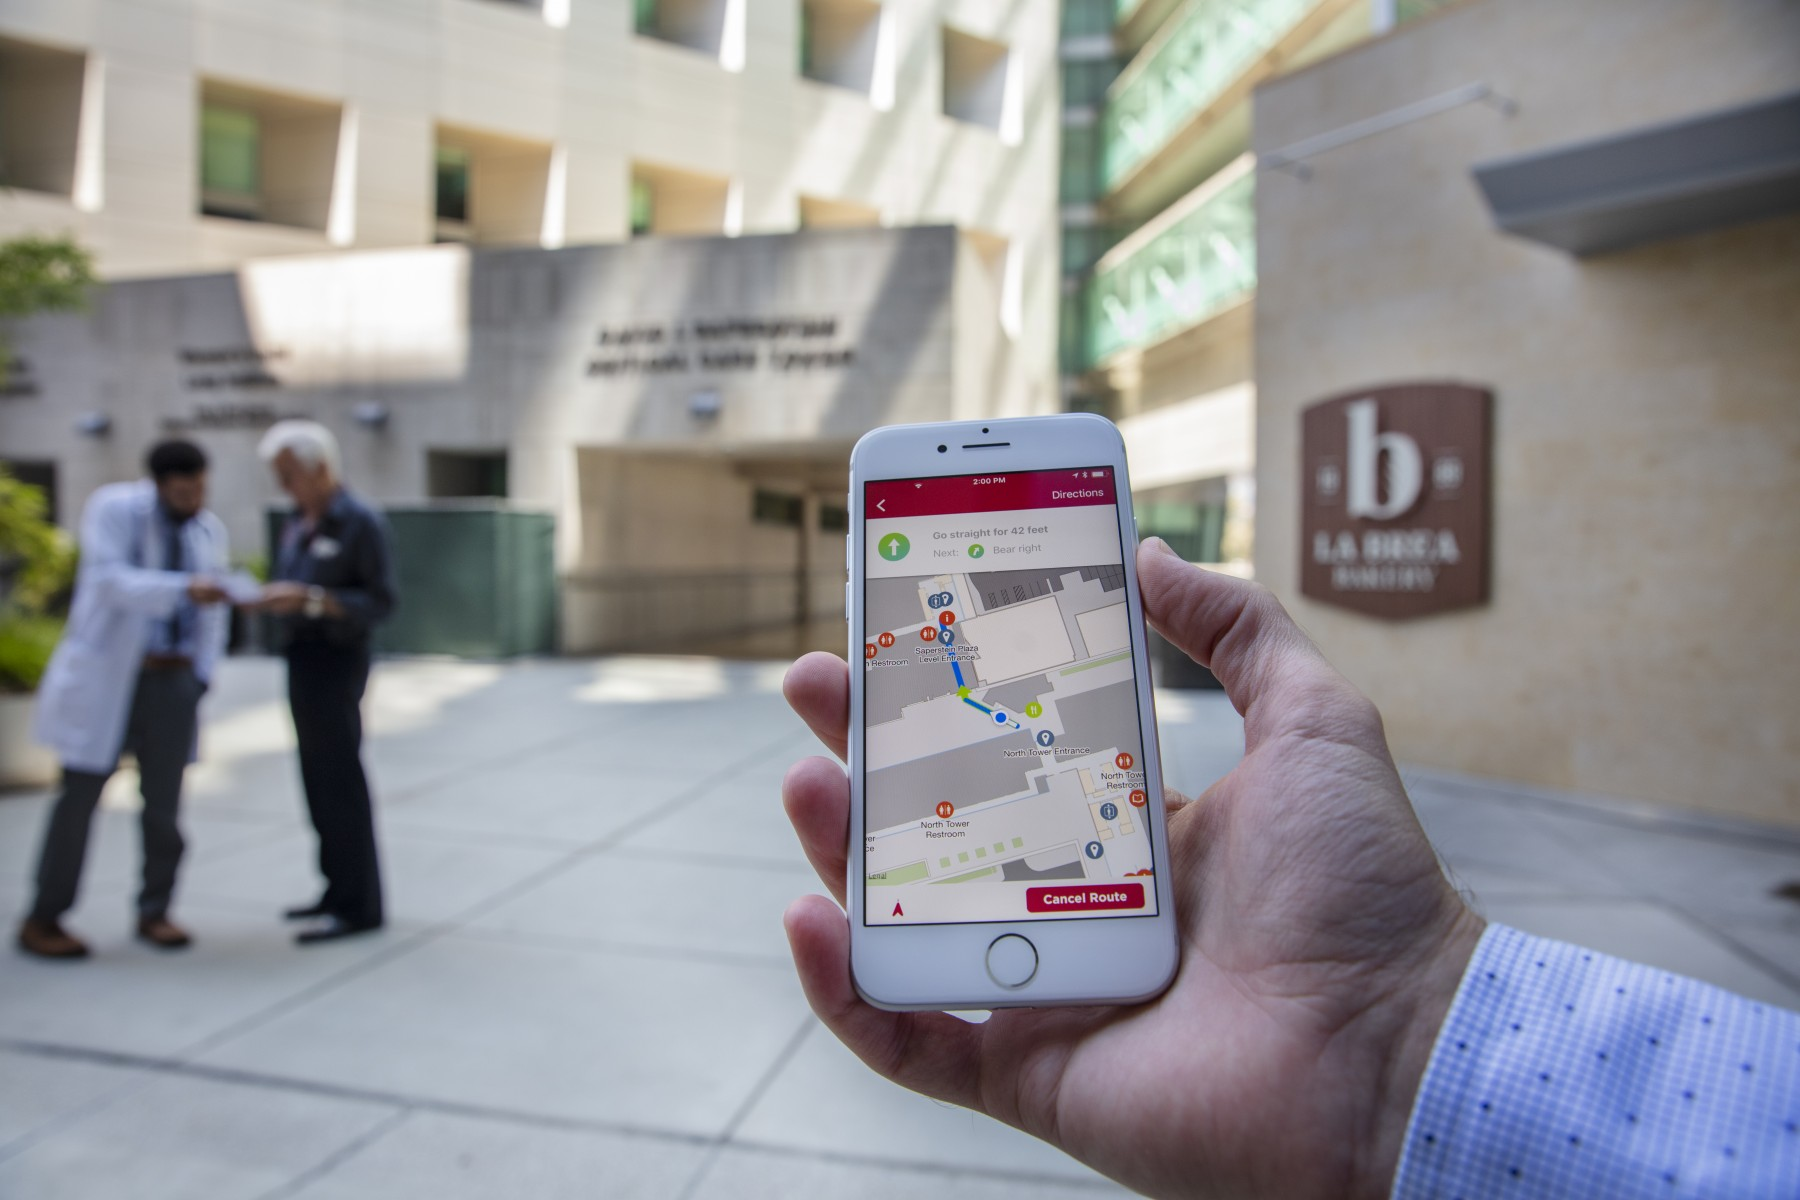 The Cedars-Sinai app is available for download from the App Store or Google Play. Photo by Cedars-Sinai.